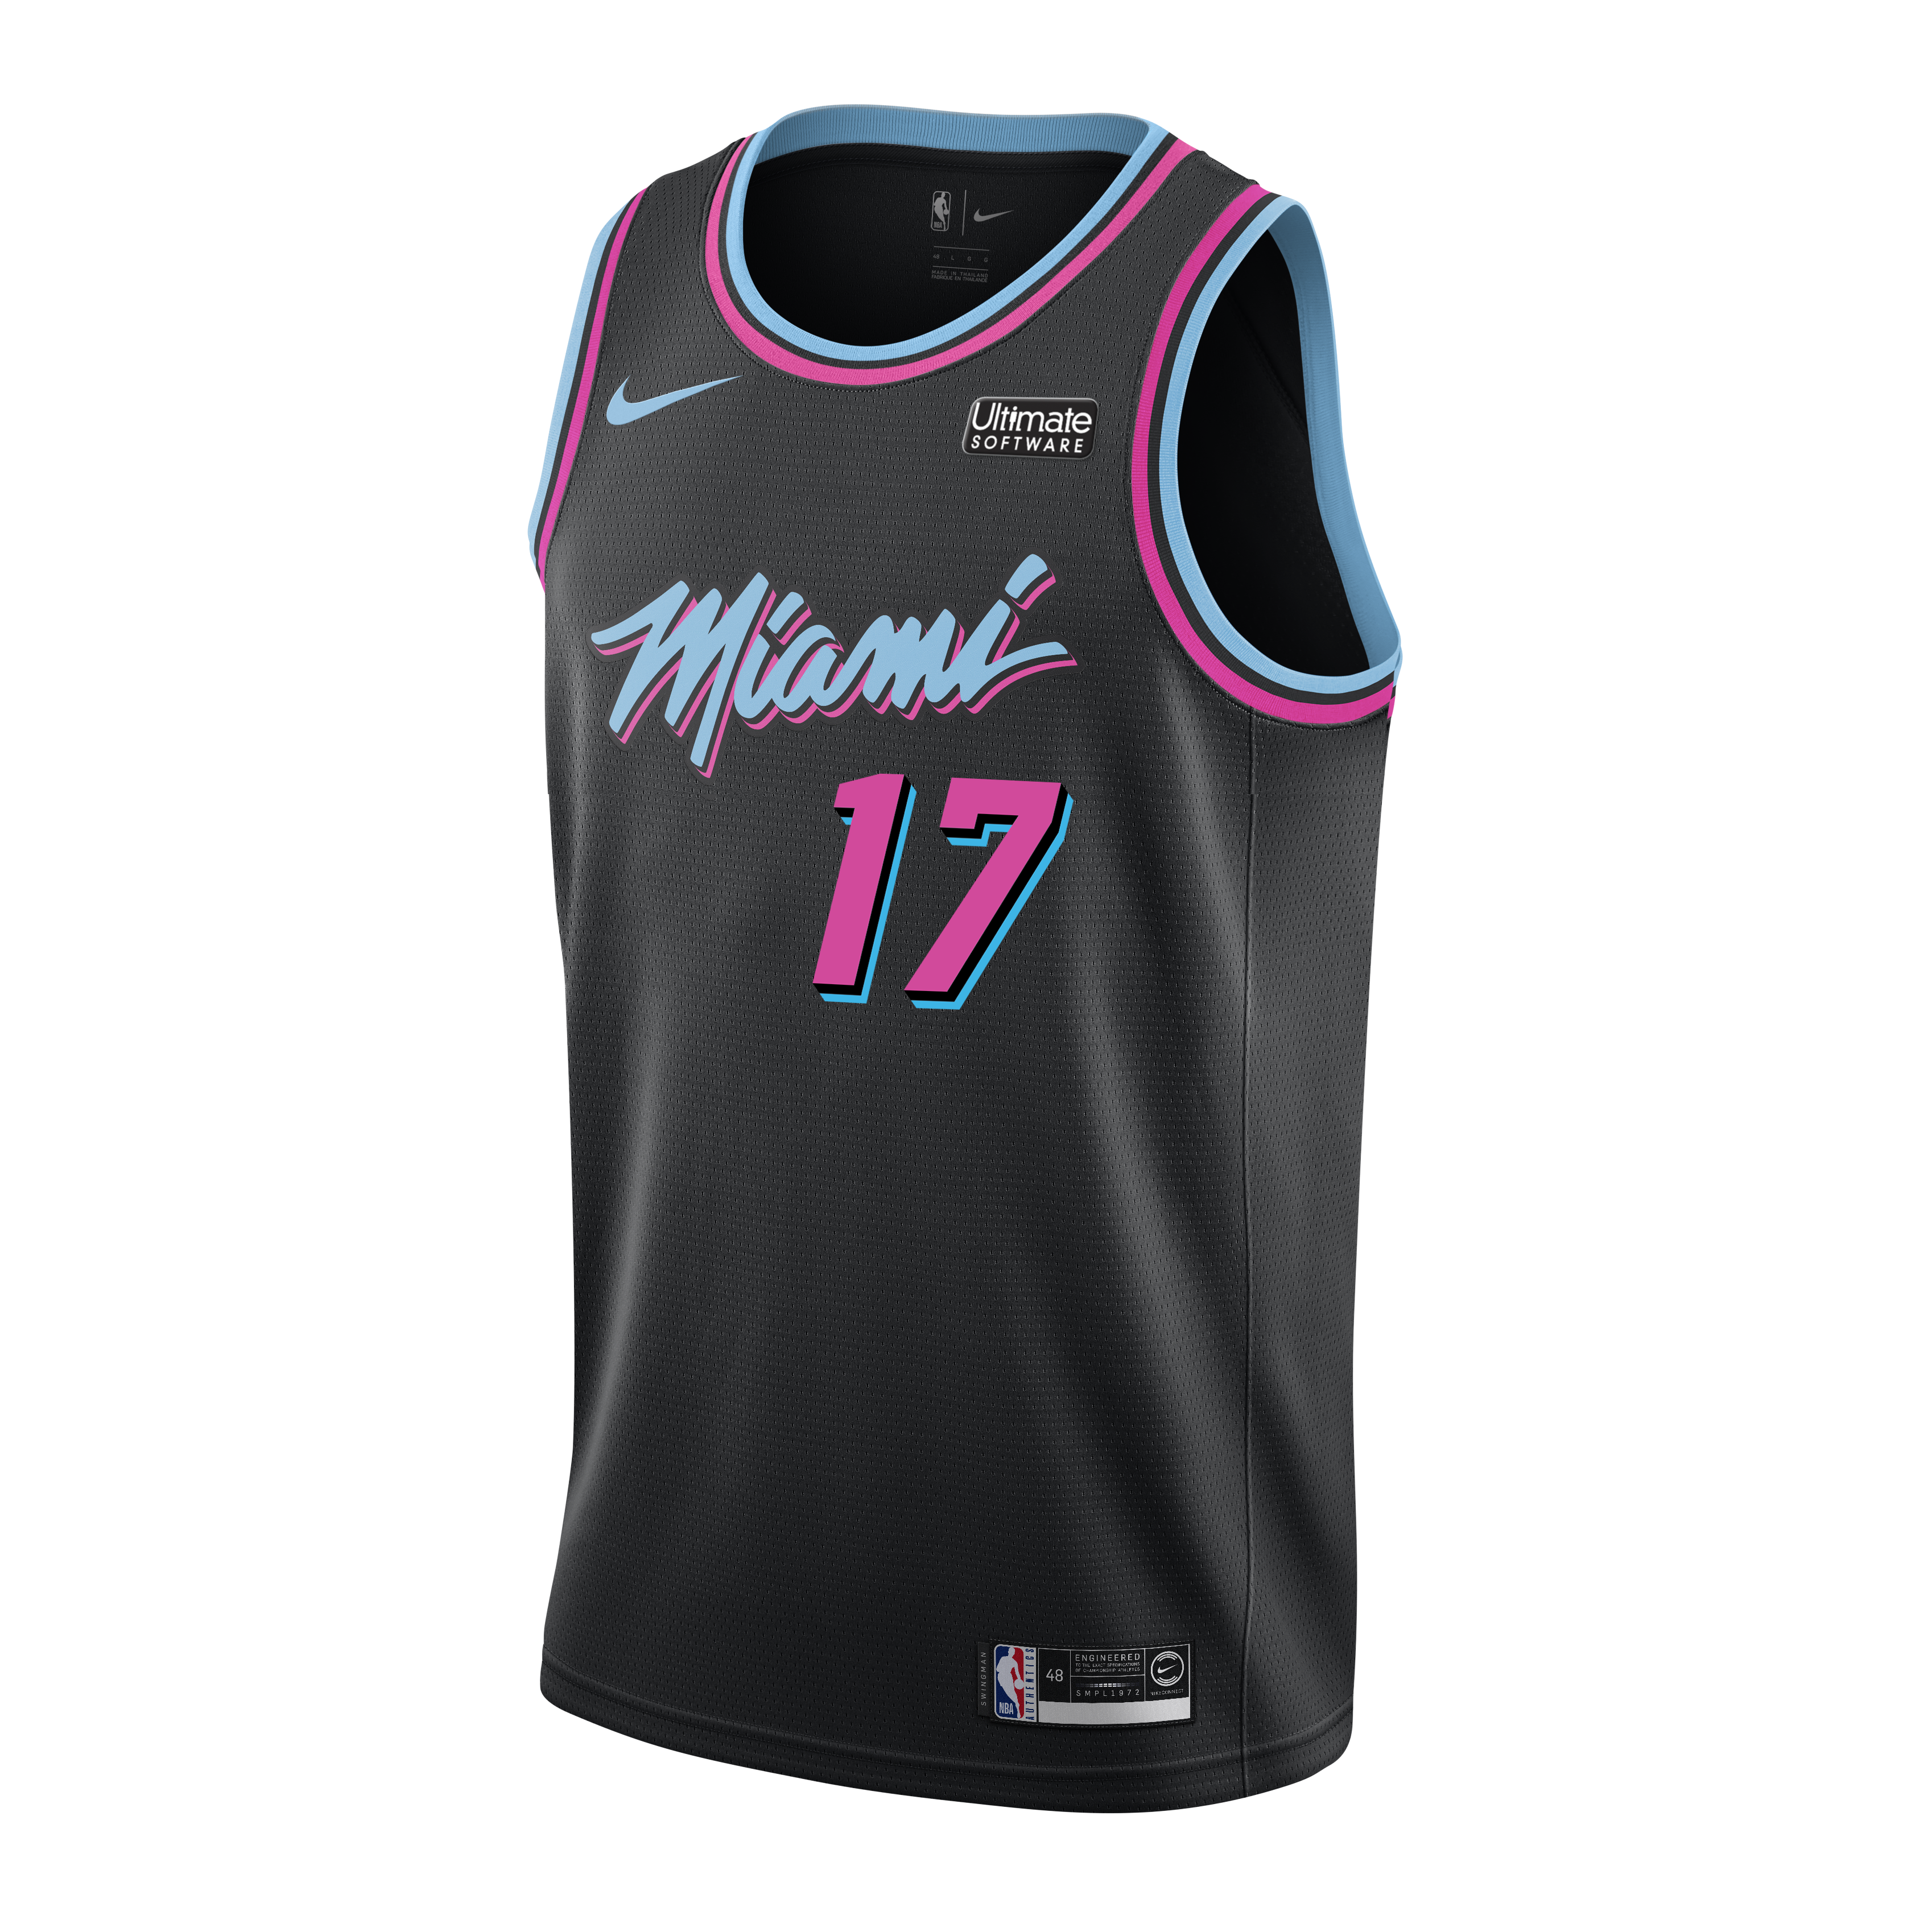 Rodney McGruder Nike Miami HEAT Vice Nights Swingman Jersey - featured image 0a4401fde